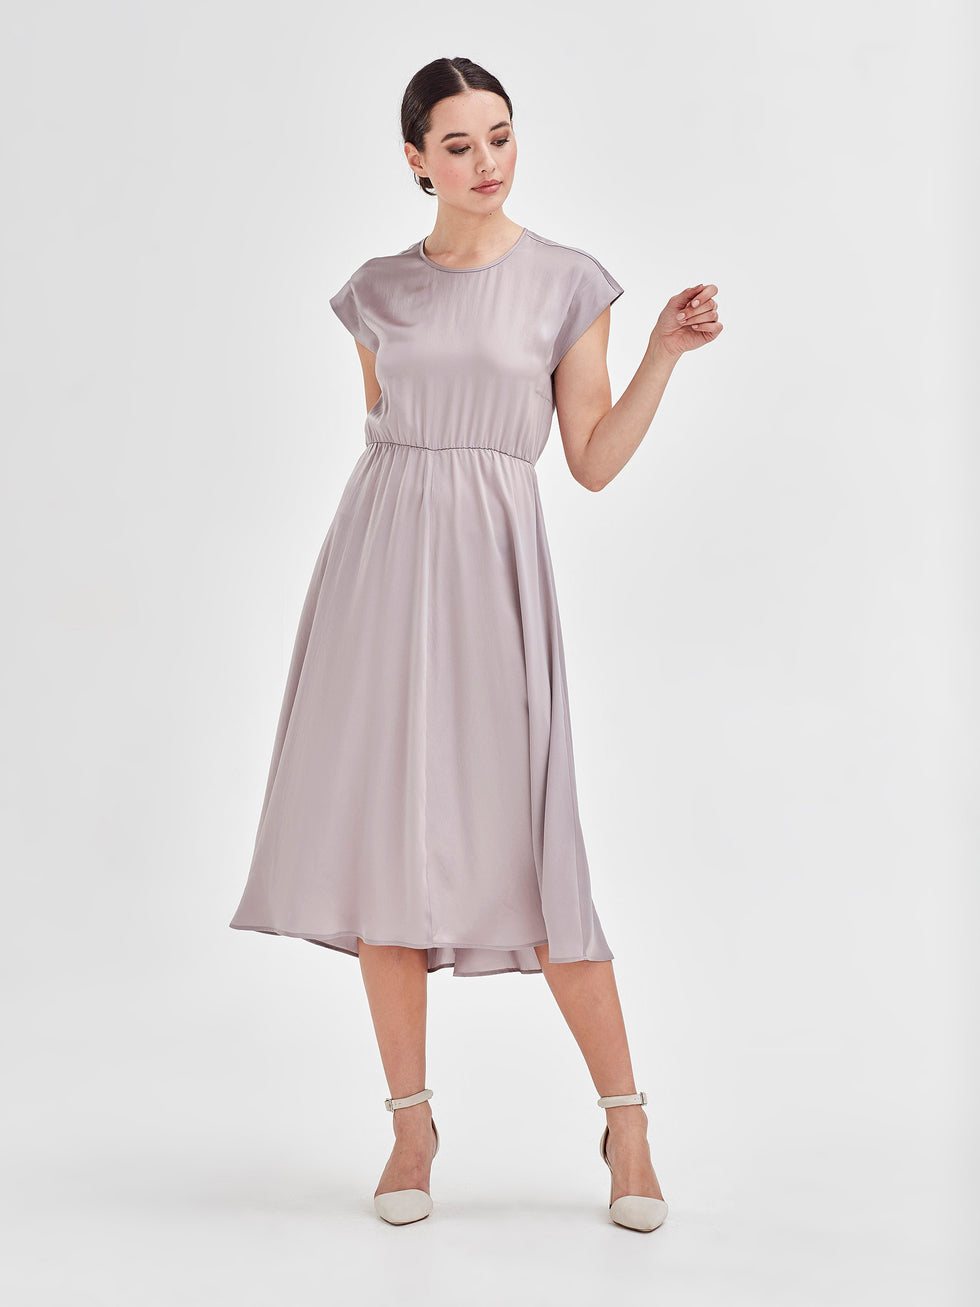 Ella Dress (Satin Triacetate) Golden 3